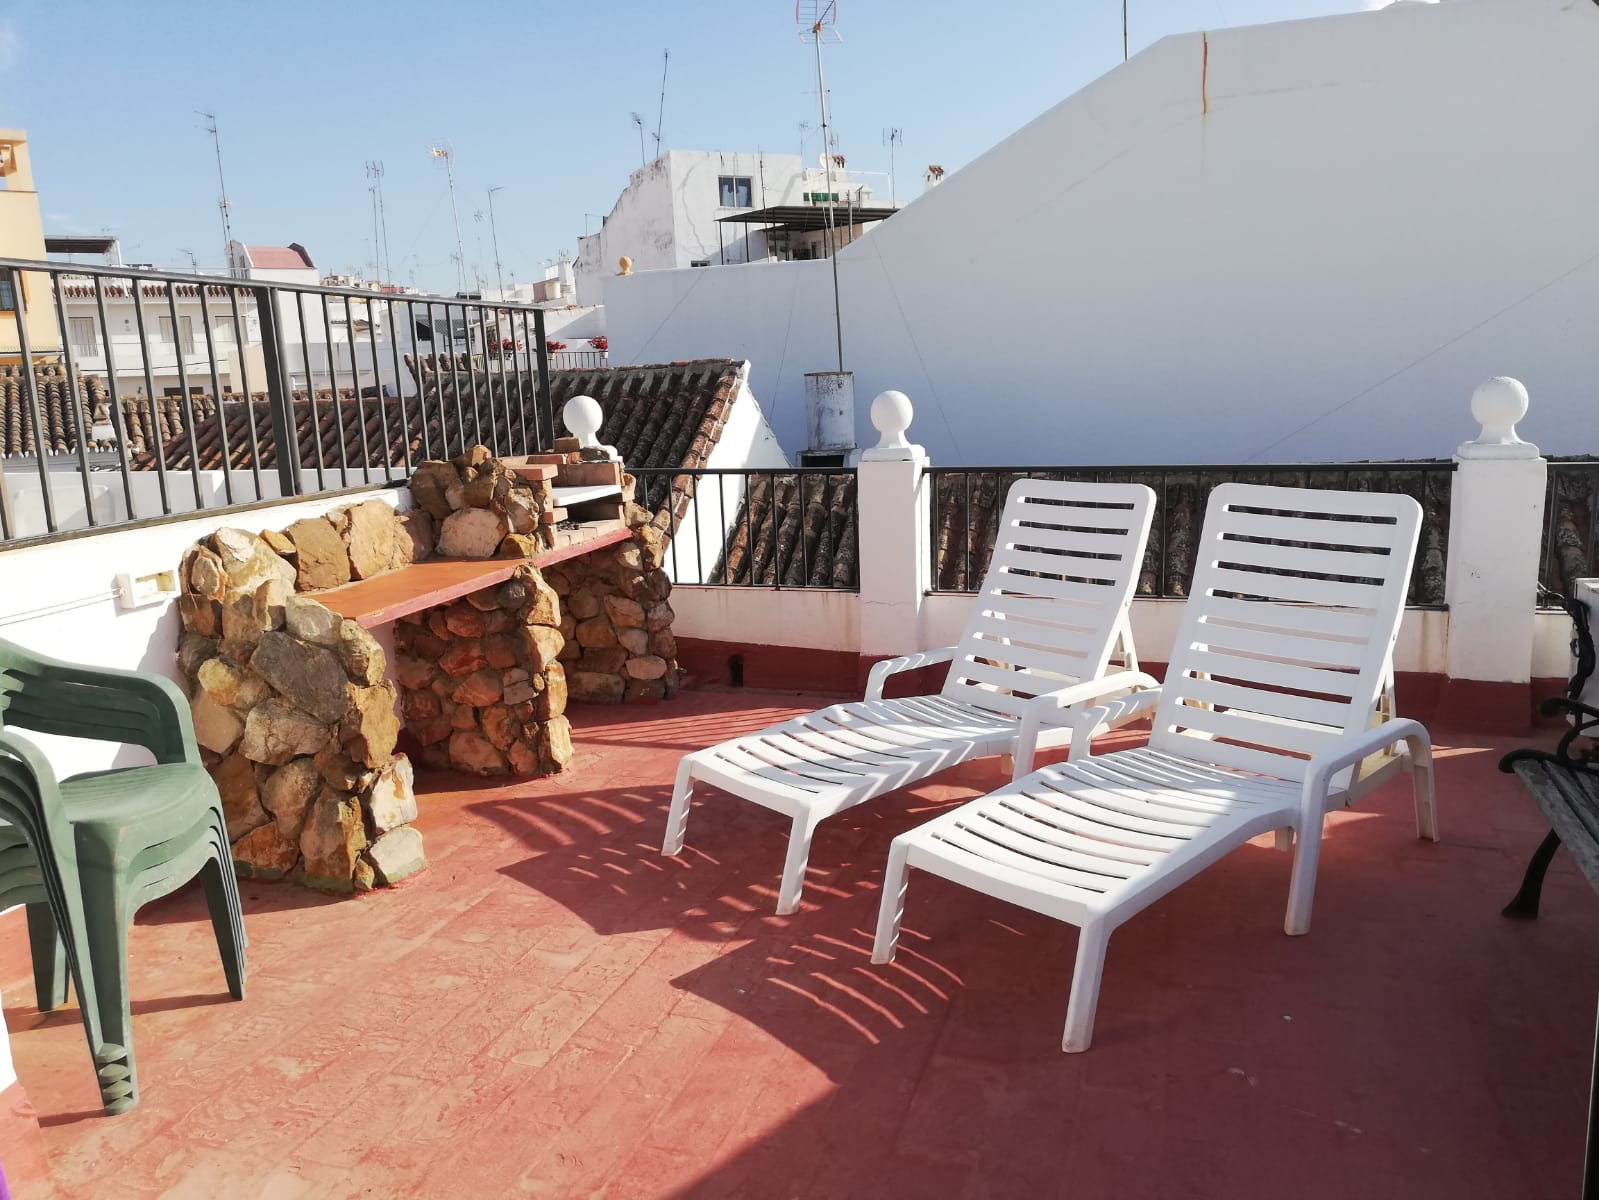 3 bedroom duplex penthouse for rent in the center of Estepona - mibgroup.es